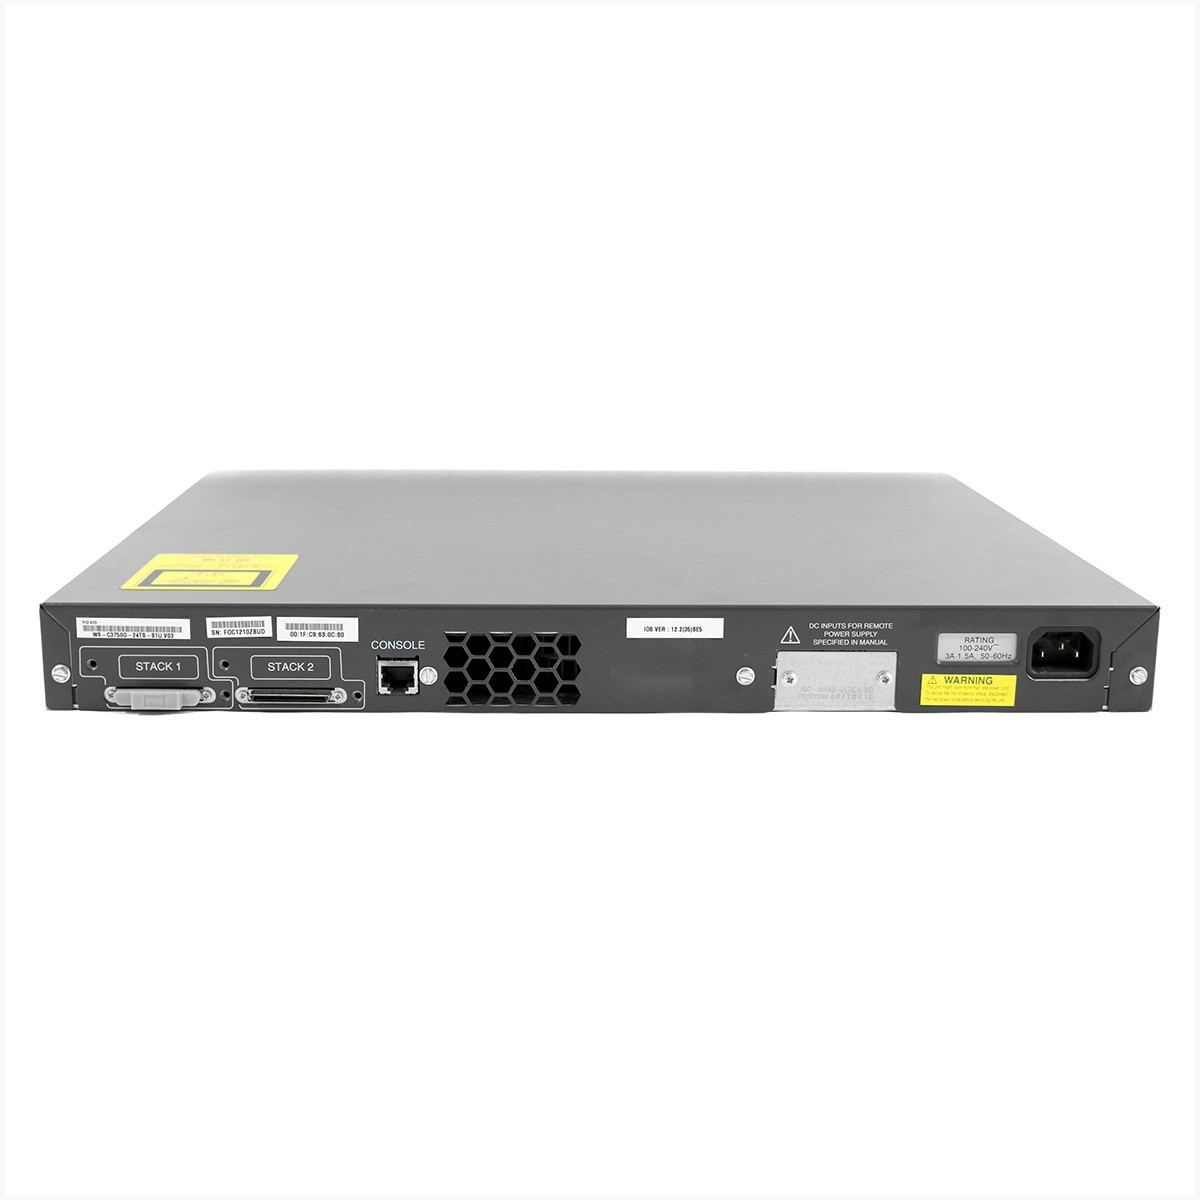 Switch cisco ws-c3750g-24ts 24 portas gigabit - usado